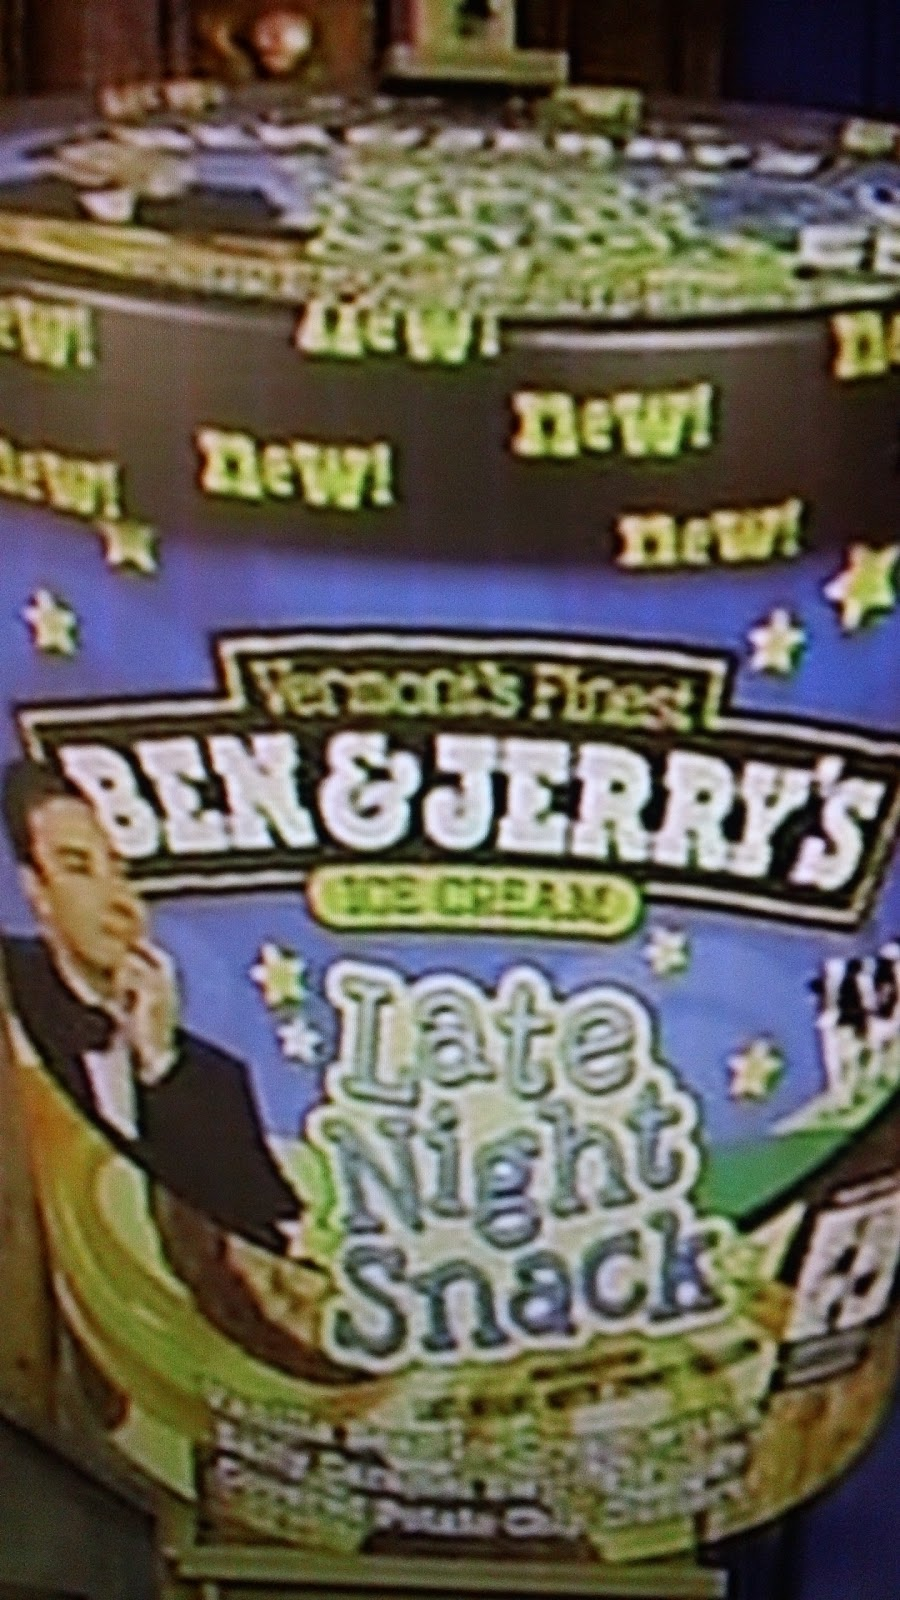 Late Night Snack ice cream named after Jimmy Fallon's Late Night with ...